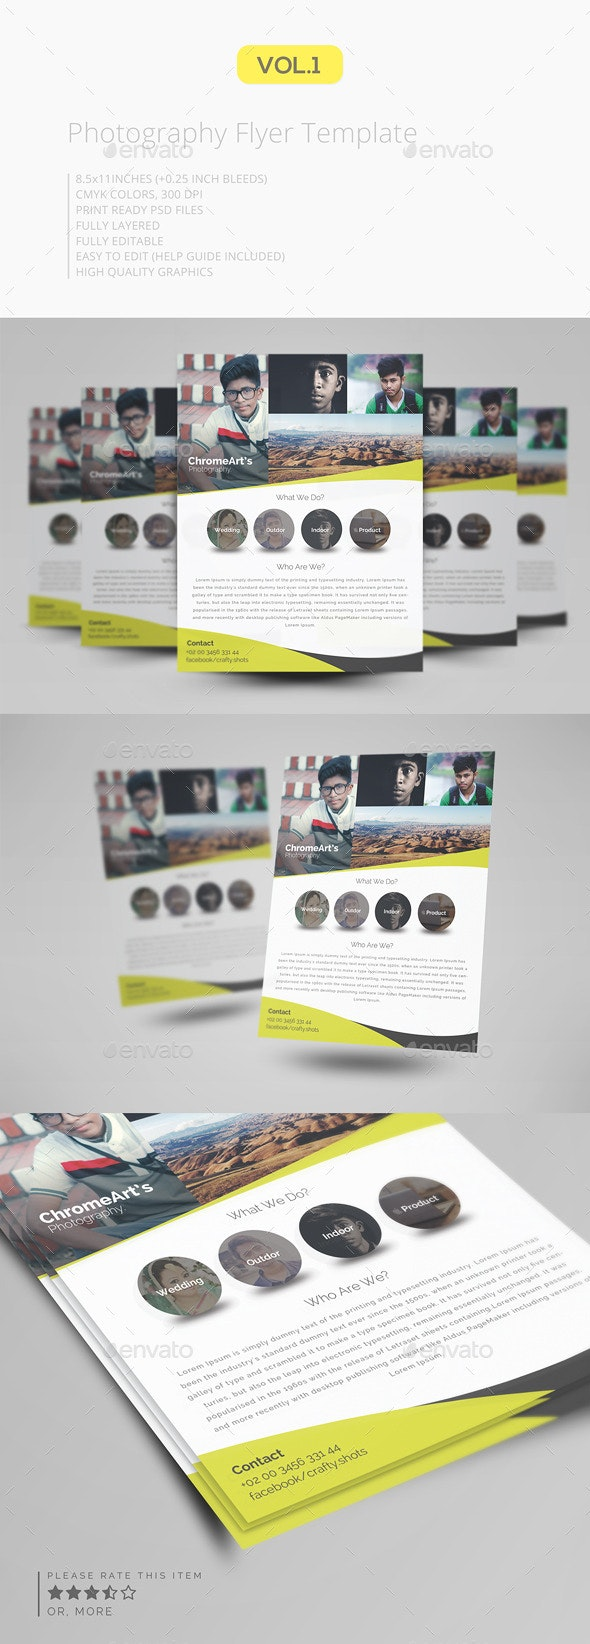 Photography Flyer Template V.1 - Corporate Flyers